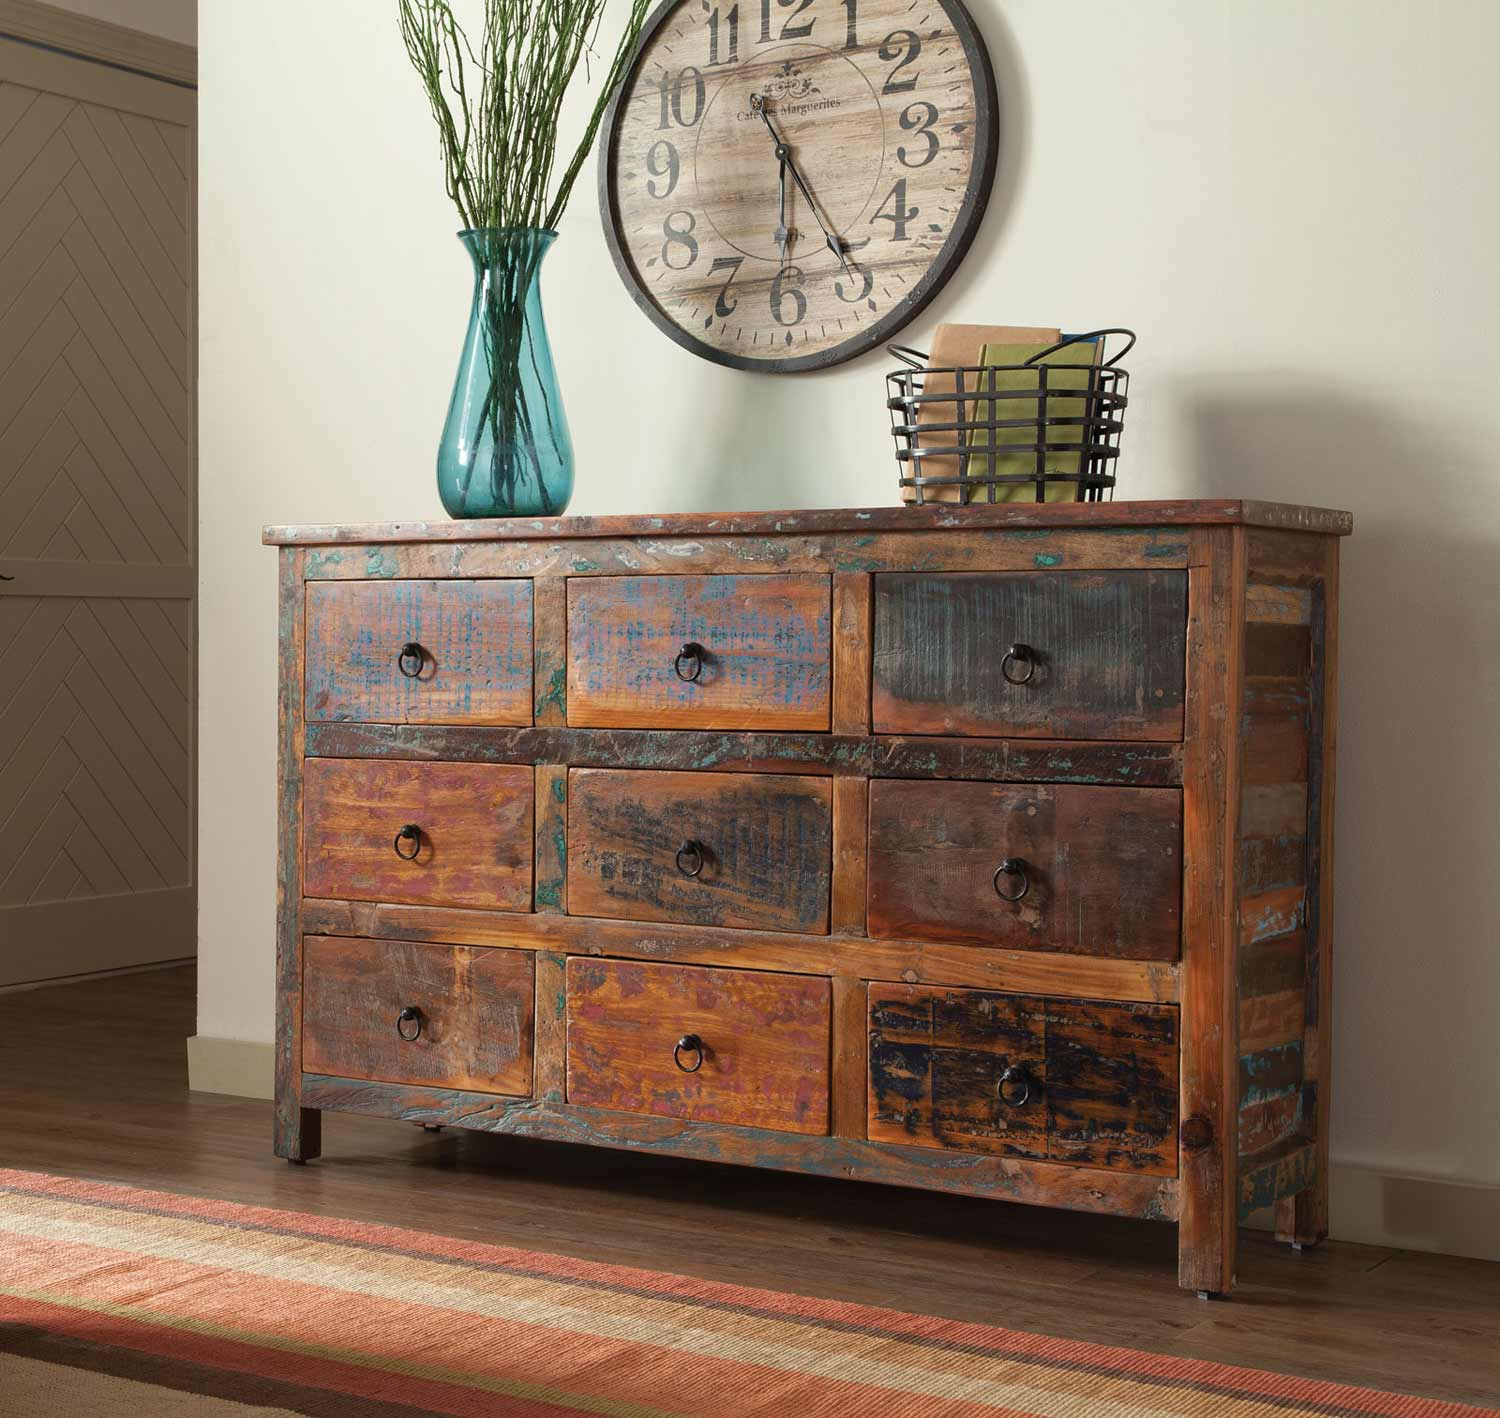 Coaster 950365 Cabinet - Reclaimed Wood